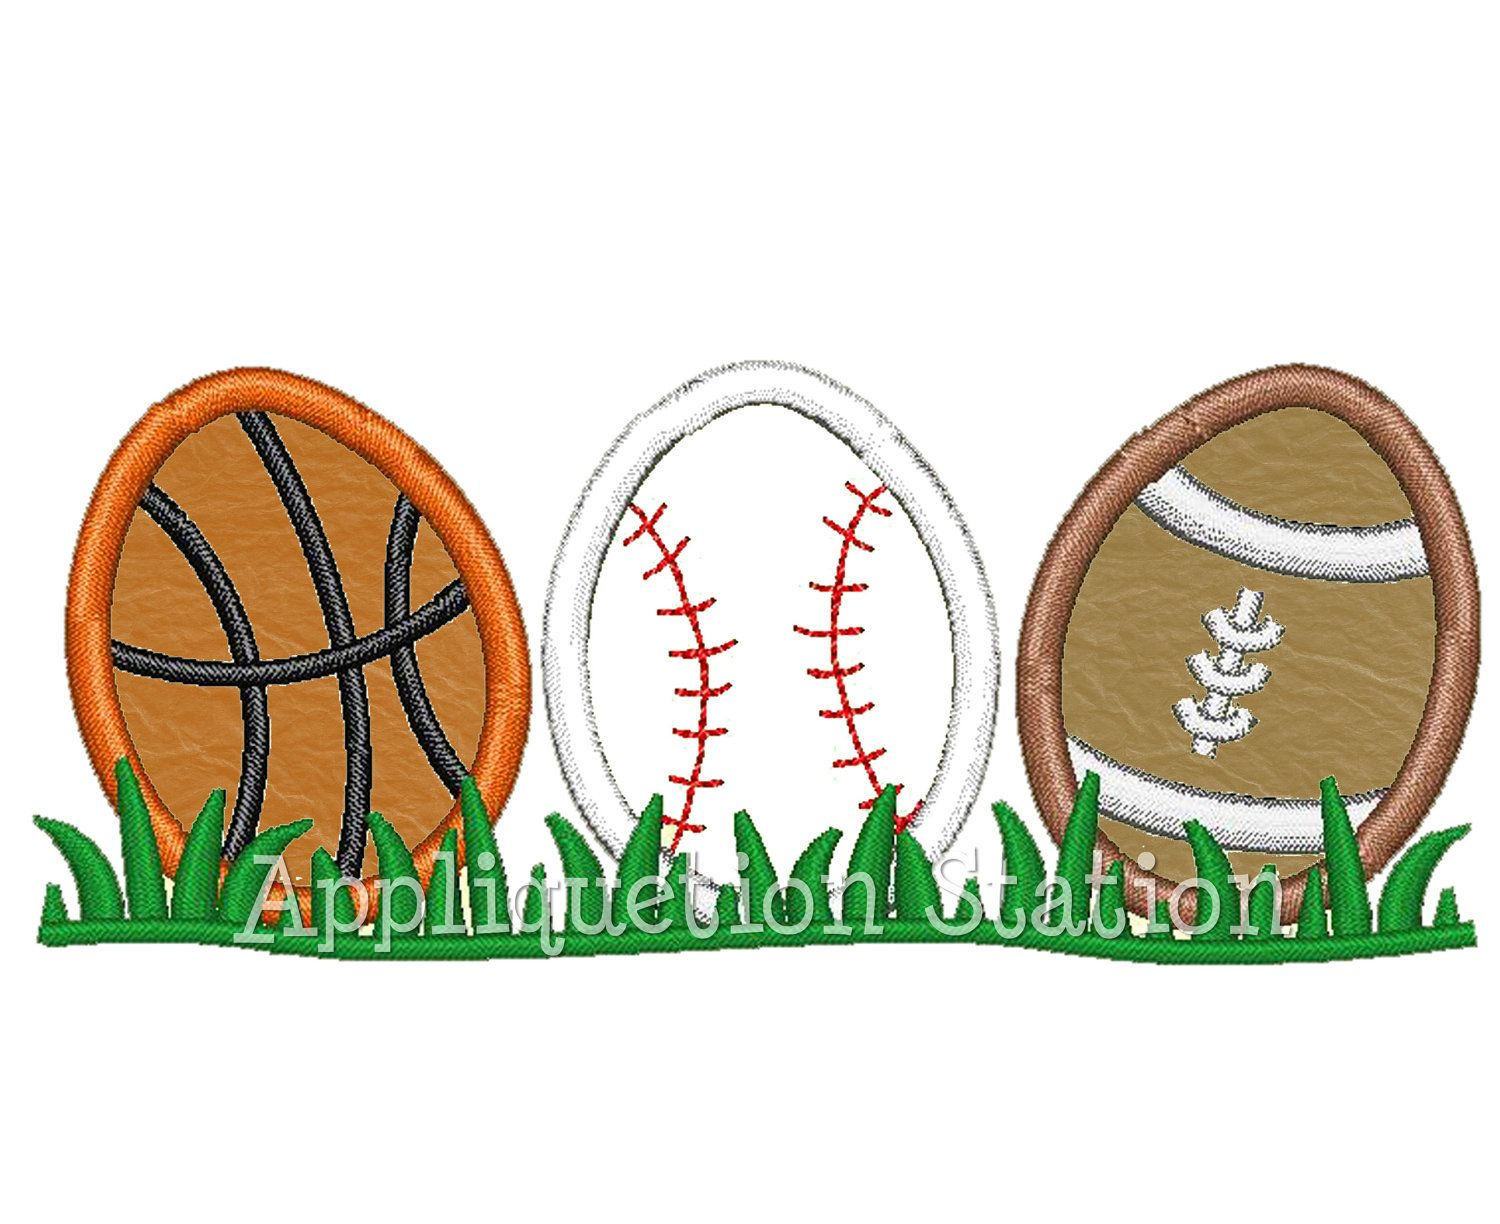 Easter Egg Sport Row Applique Machine Embroidery Design Pattern ...